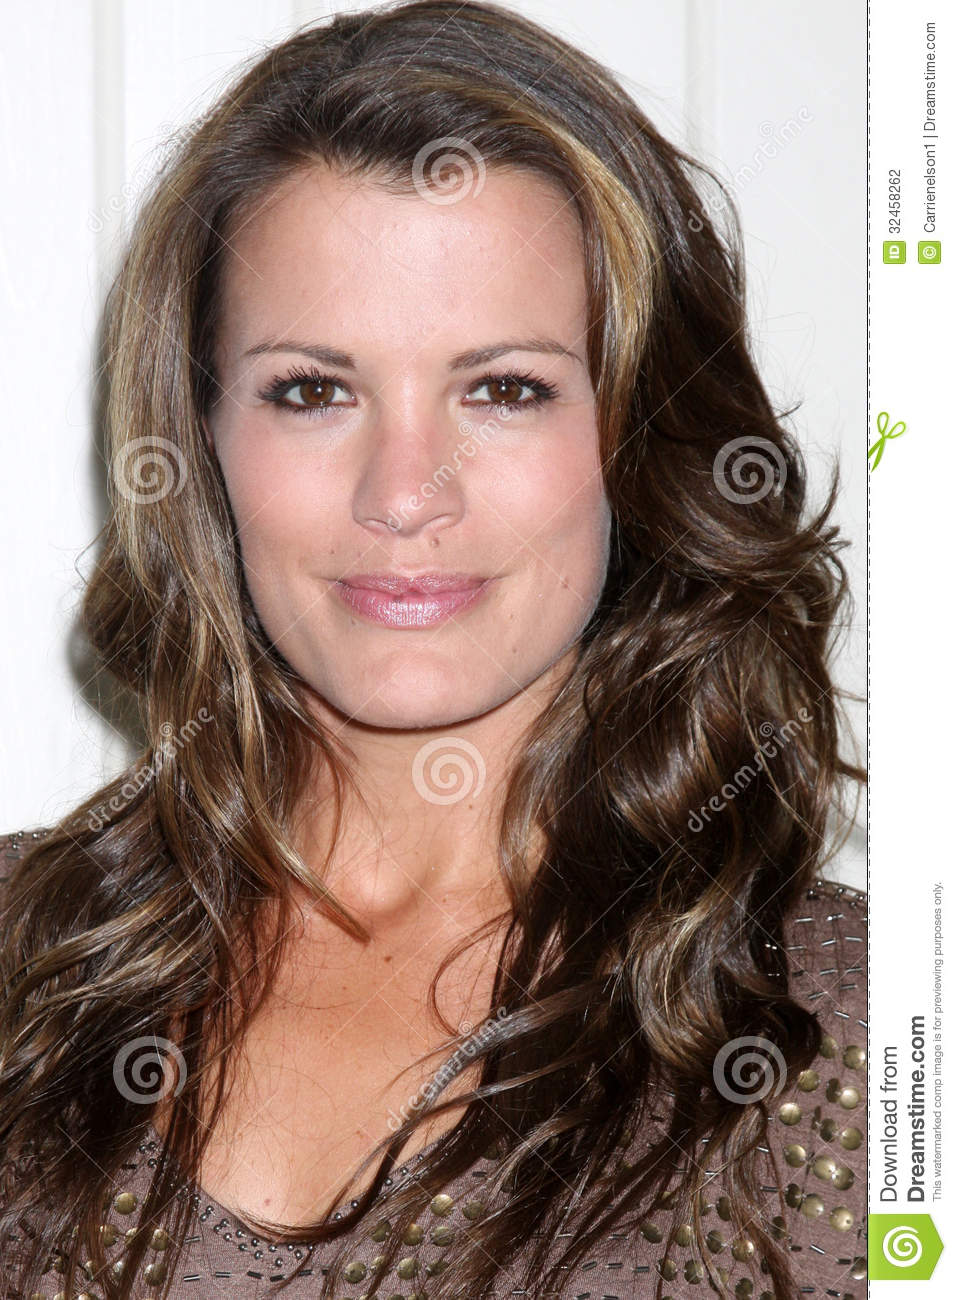 melissa claire egan and justin hartleymelissa claire egan family, melissa claire egan, melissa claire egan twitter, melissa claire egan instagram, melissa claire egan husband, melissa claire egan net worth, melissa claire egan wedding pictures, melissa claire egan pregnant, melissa claire egan bio, melissa claire egan feet, melissa claire egan leaving y r, melissa claire egan parents, melissa claire egan height, melissa claire egan and justin hartley, melissa claire egan wedding, melissa claire egan hot, melissa claire egan wedding photos, melissa claire egan bikini, melissa claire egan facebook, melissa claire egan measurements